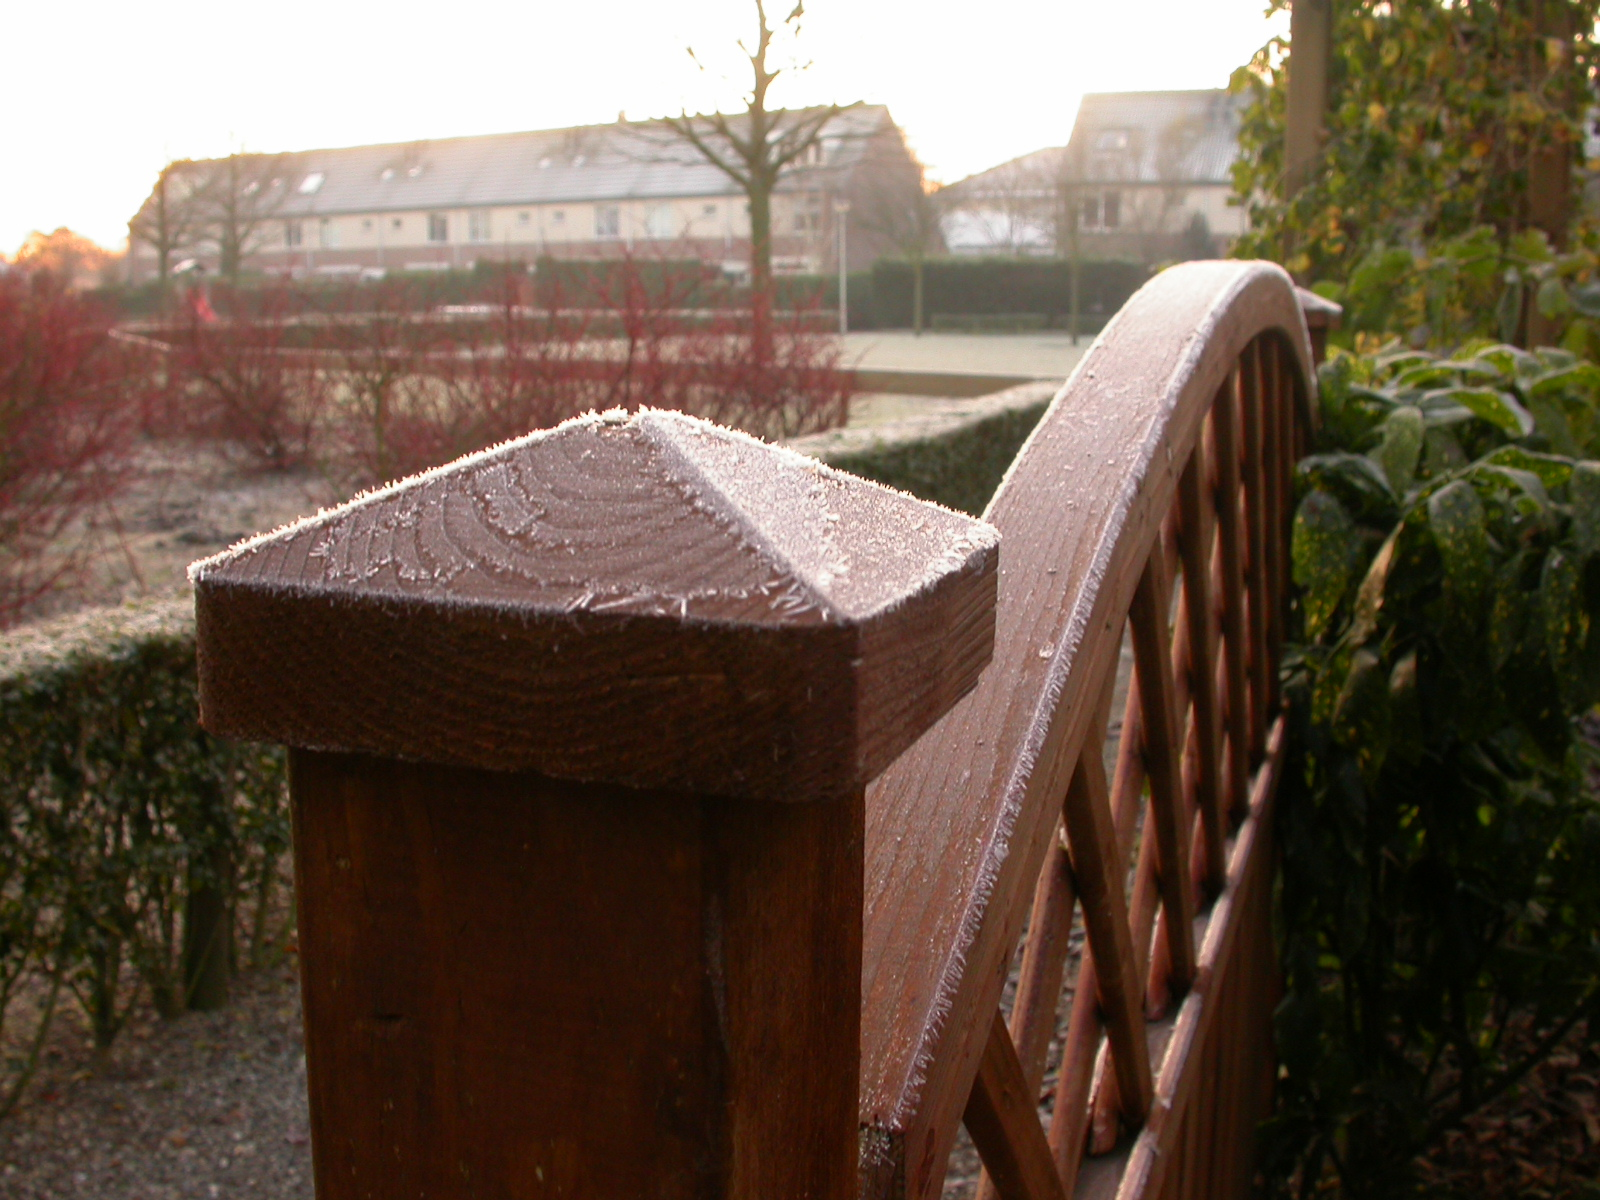 eva frost on a garden fence cold winter ice